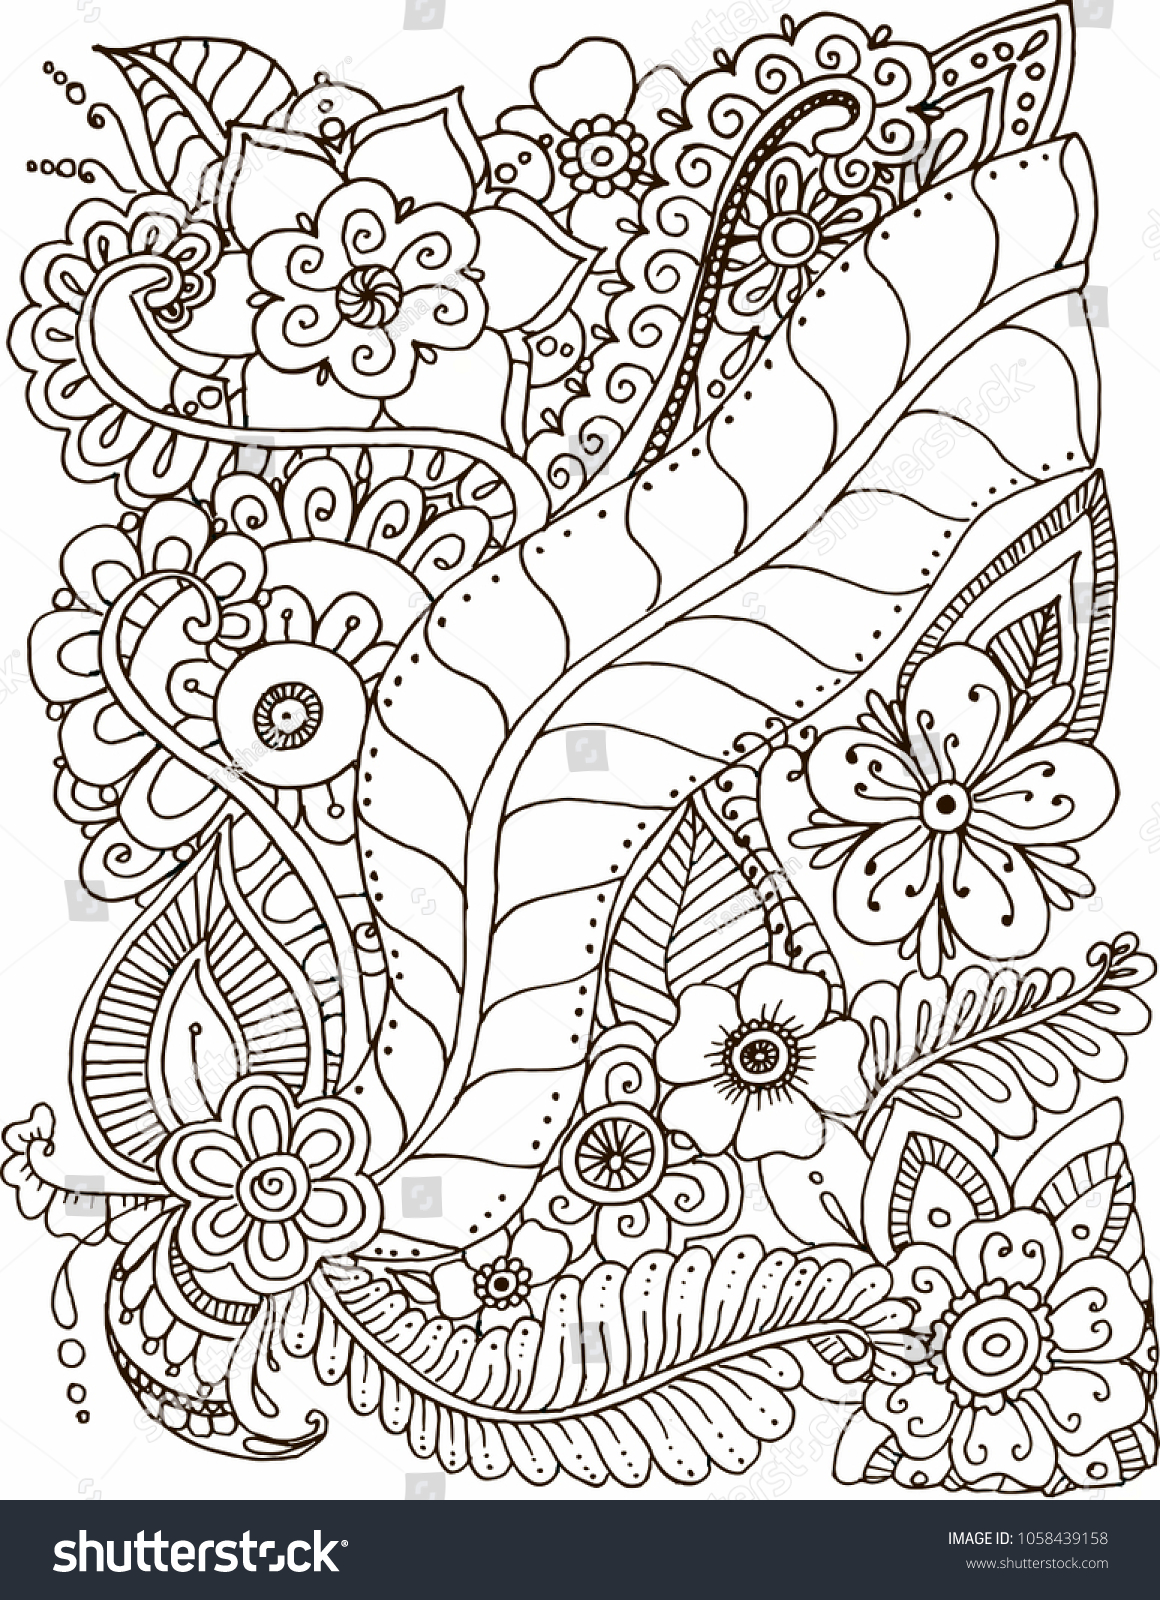 Pendrawn Coloring Page Flowers Doodle Isolated Stock Illustration ...